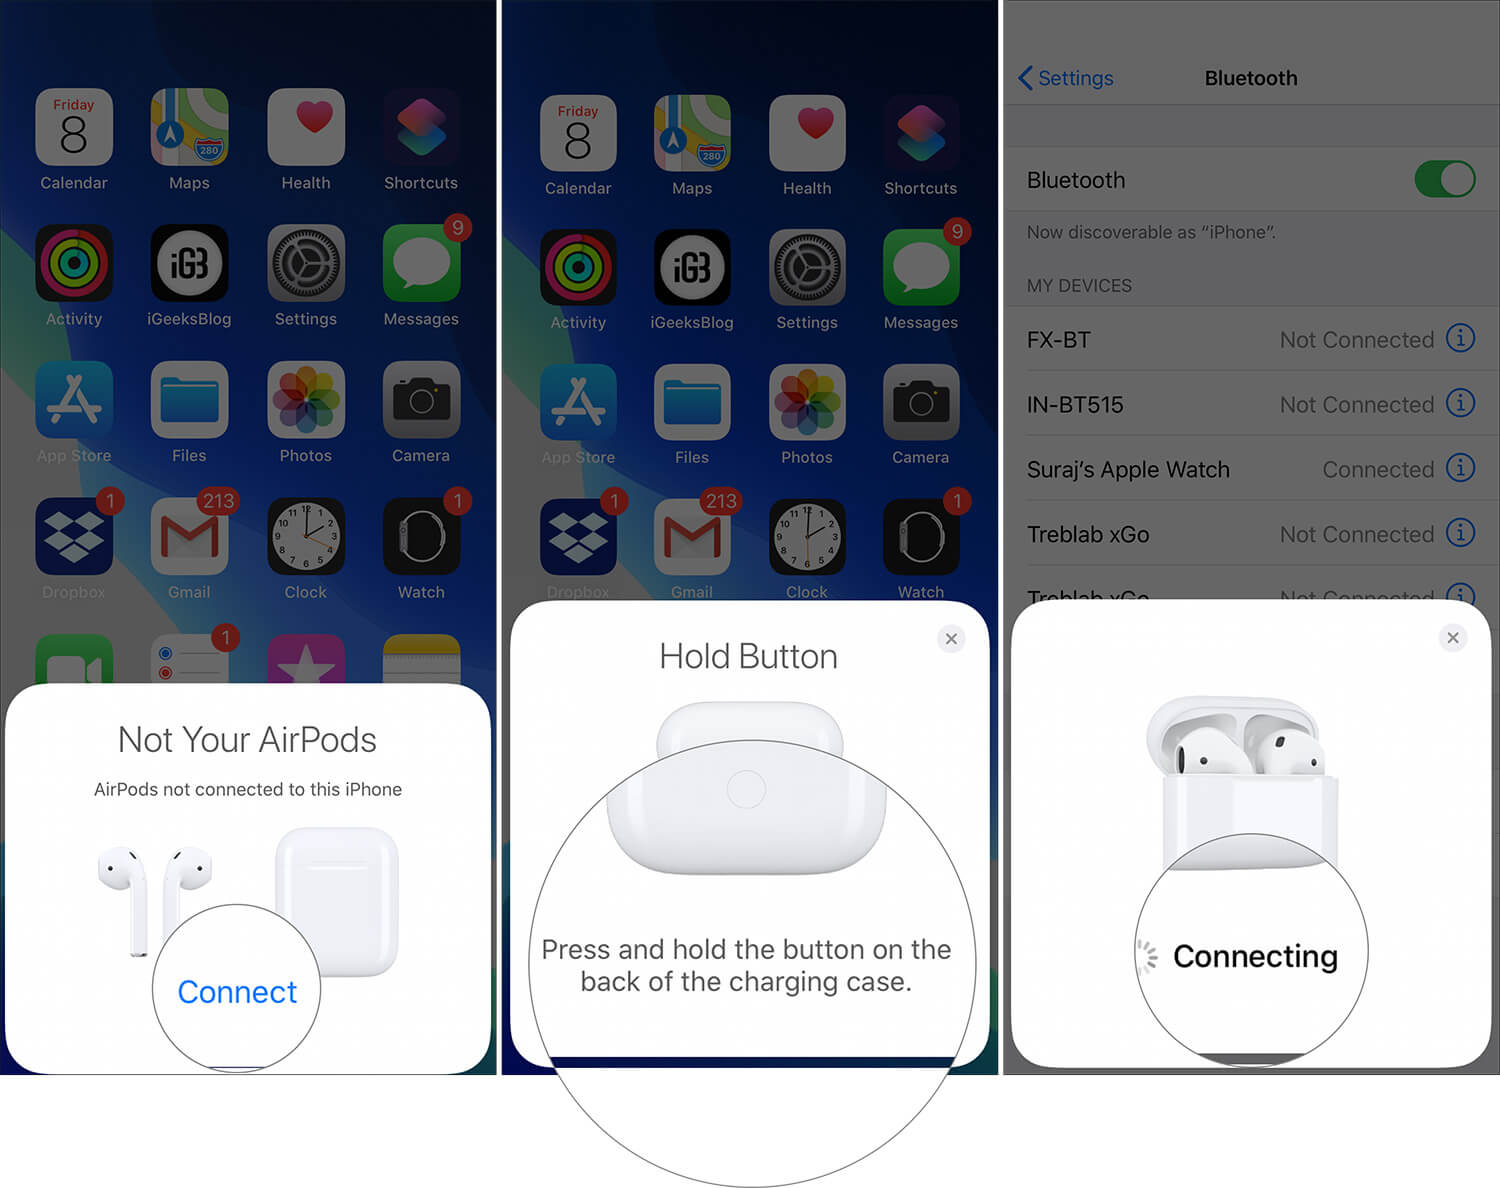 Connect and Press Hold setup button to pair AirPods with iPhone